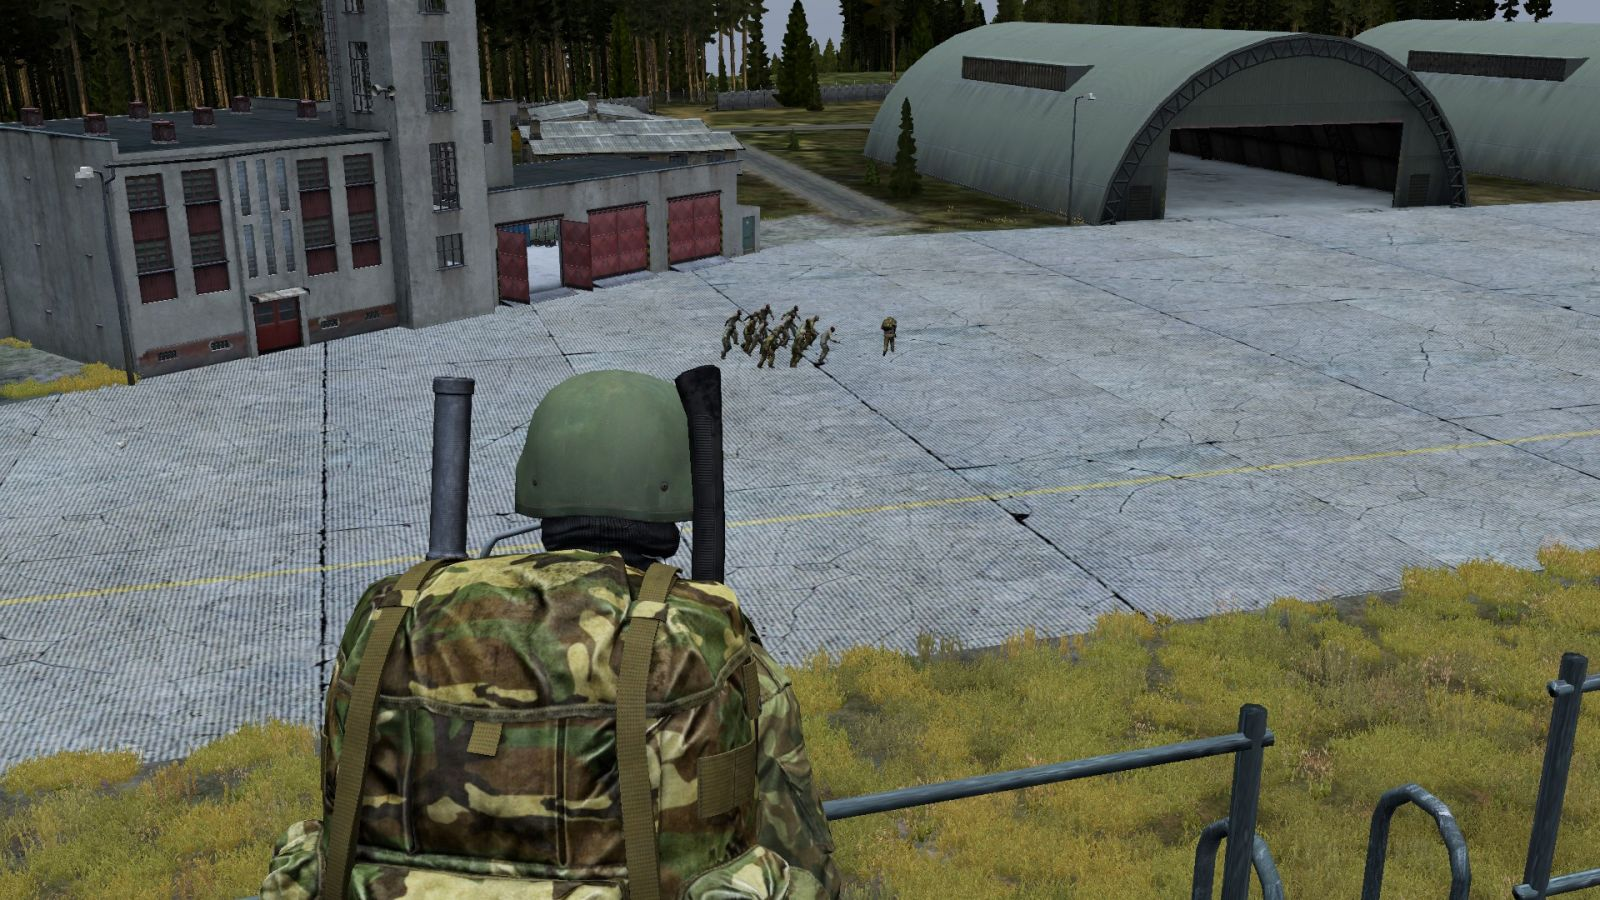 Troubles in the airfield